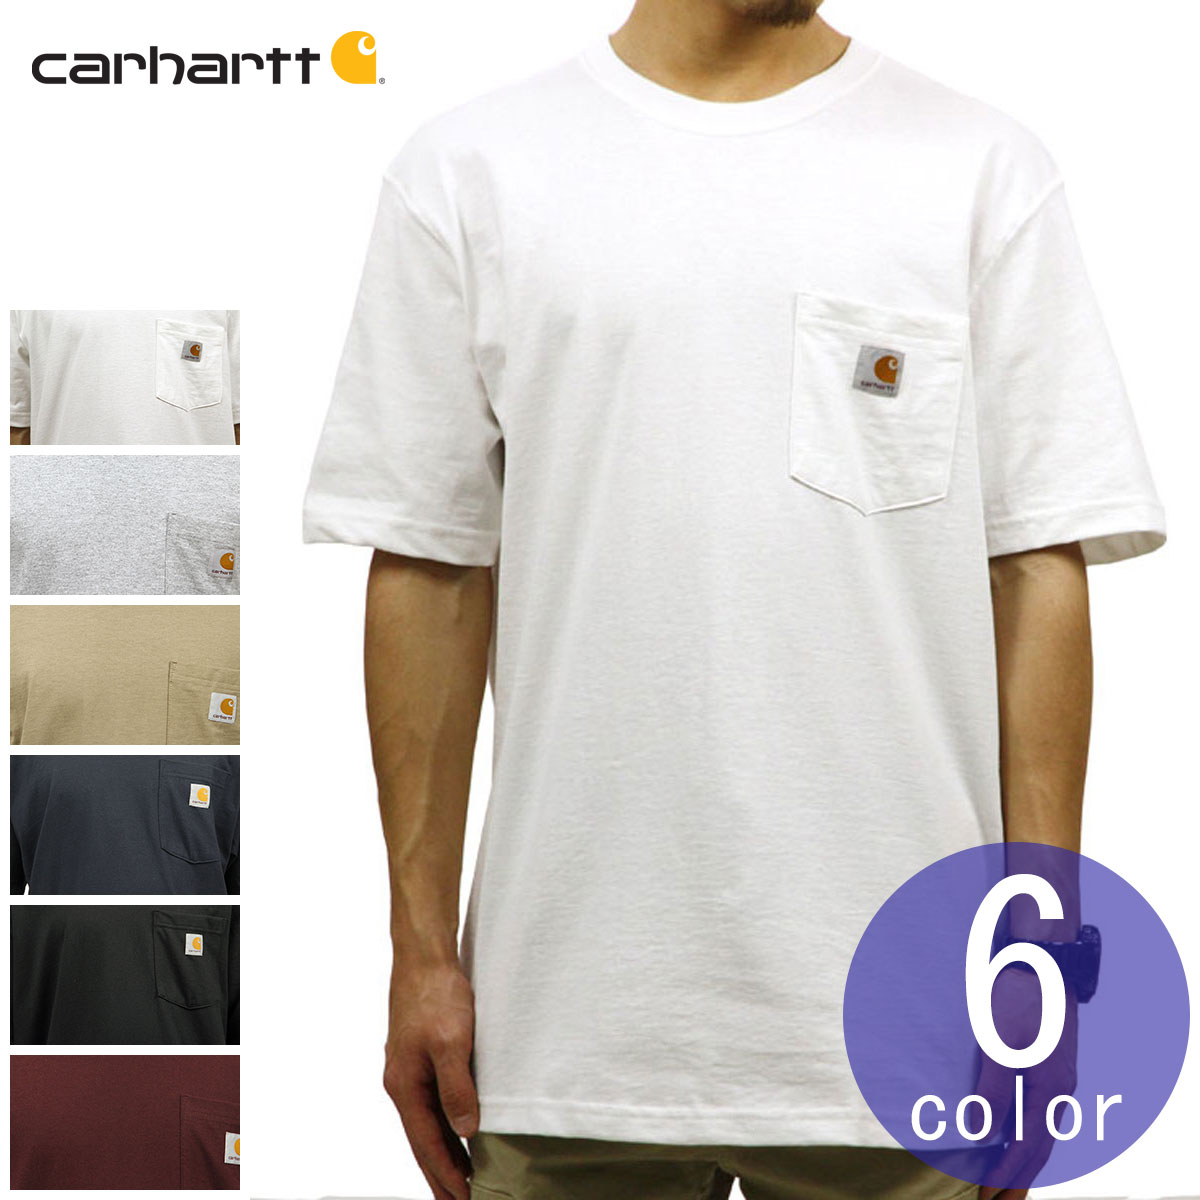 1c7562bd34 Car heart CARHARTT regular article men plain fabric short sleeves pocket T-shirt  WORKWEAR POCKET ...